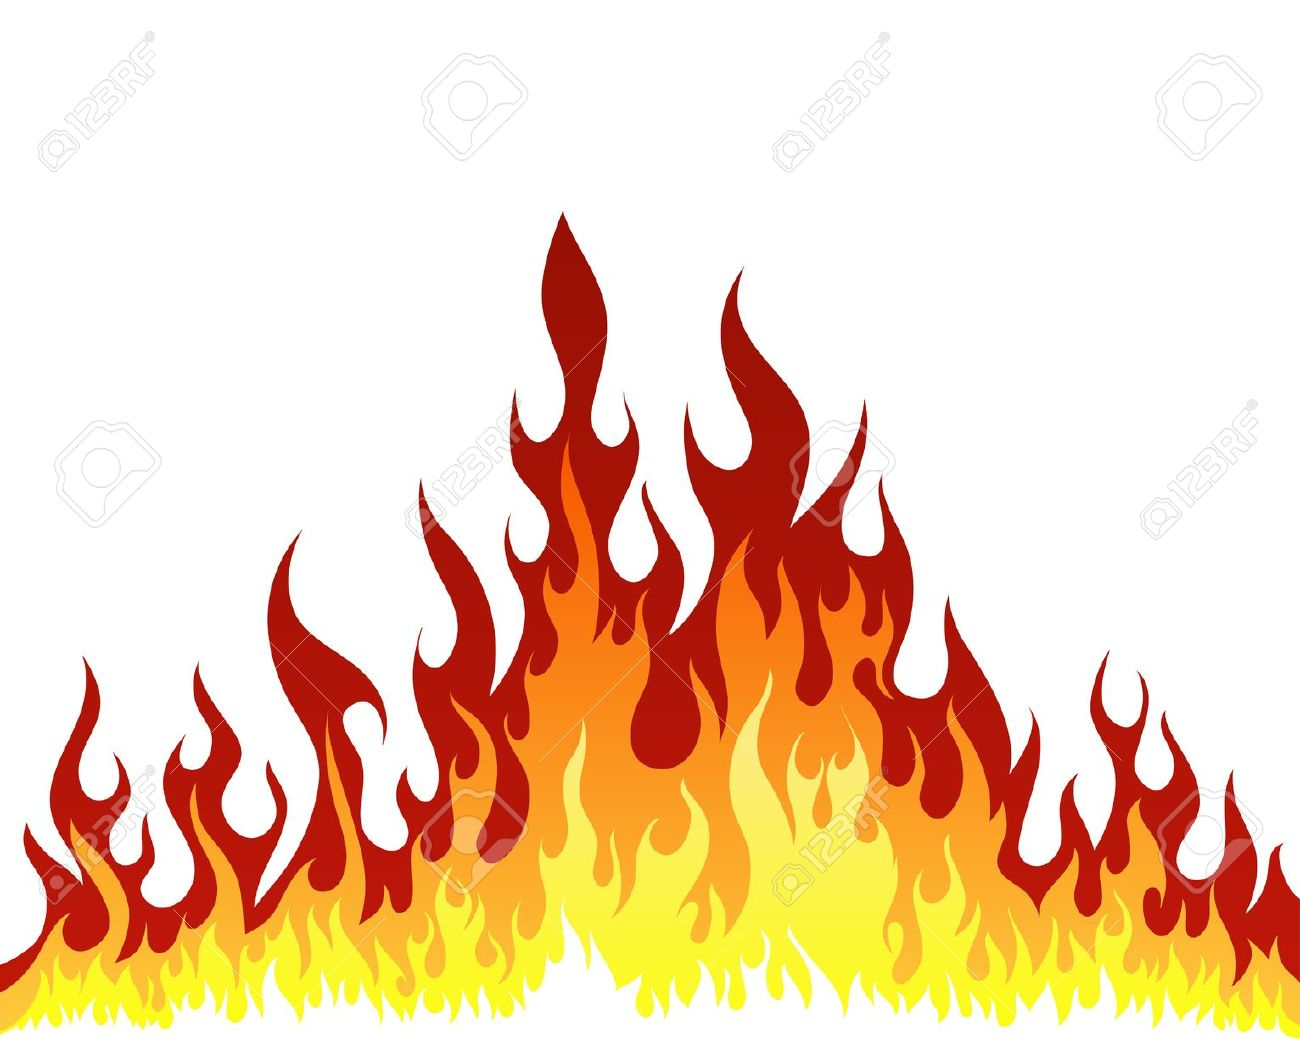 Flames clipart row Clipart Images Free Free Clipart